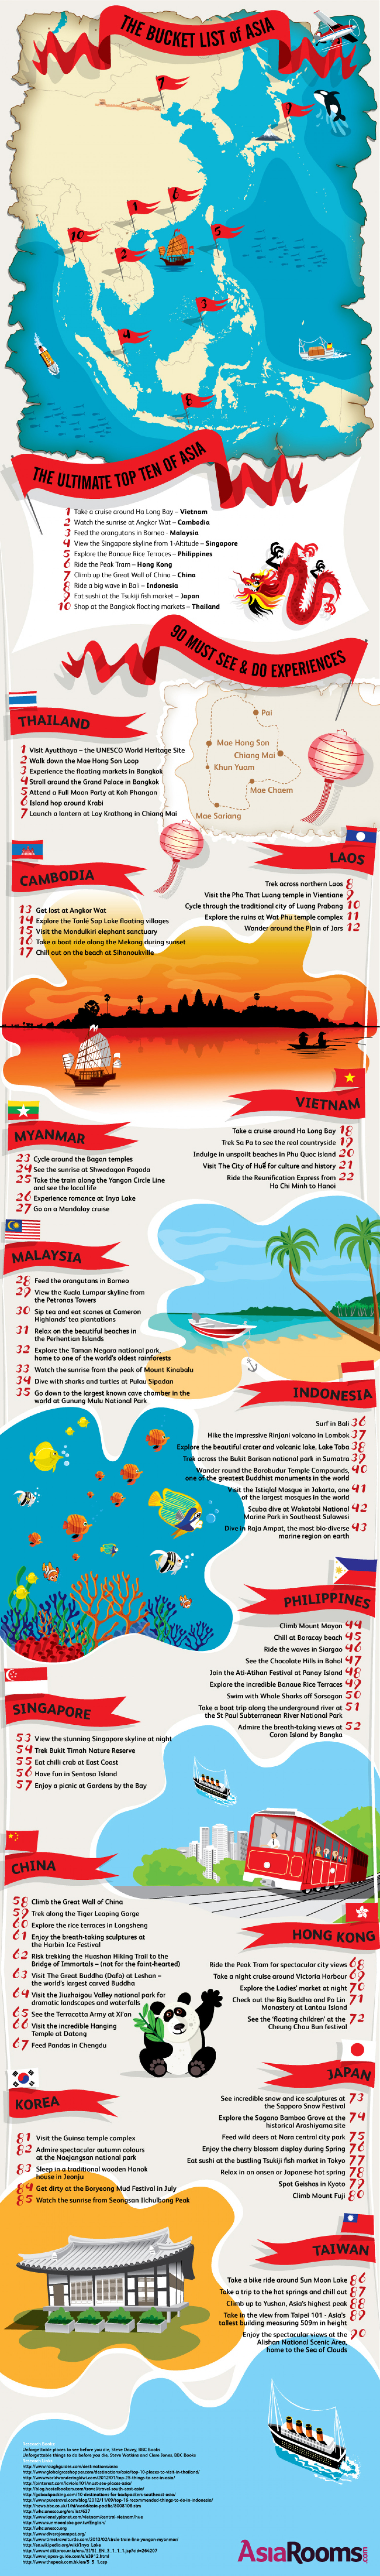 The Bucket List of Asia Infographic